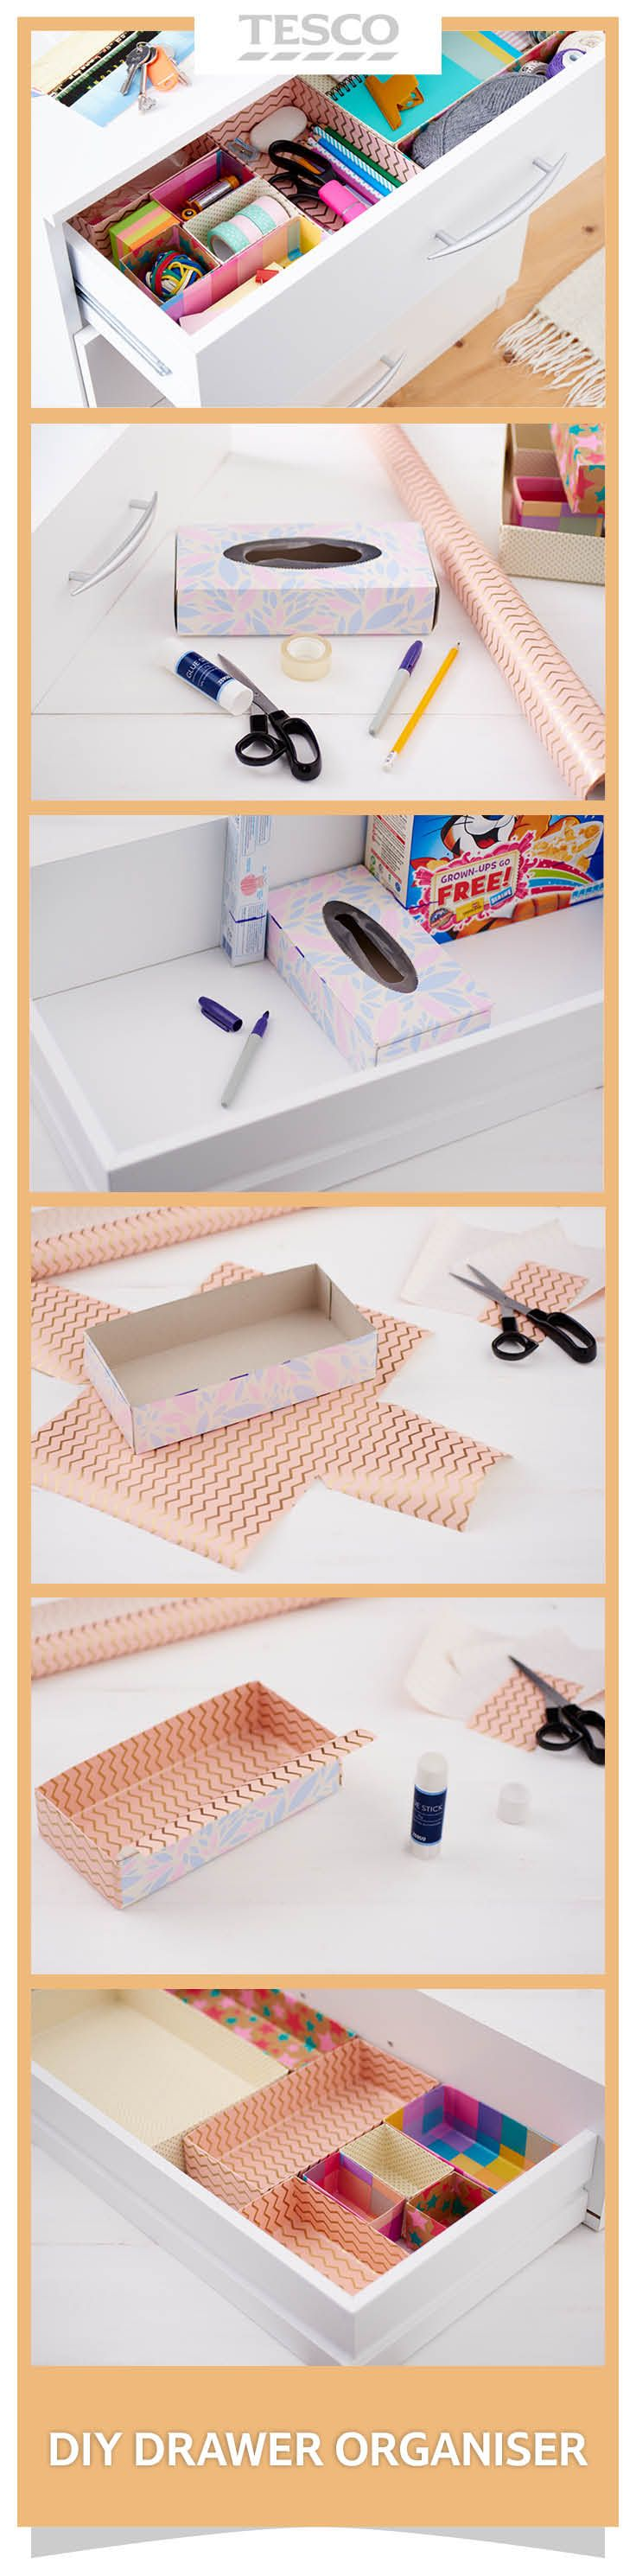 The secret to de-cluttered, organised drawers? Use cardboard dividers! Take cereal boxes and other cardboard packaging and turn them into neat dividers for tidy drawers and cupboards. | Tesco Living